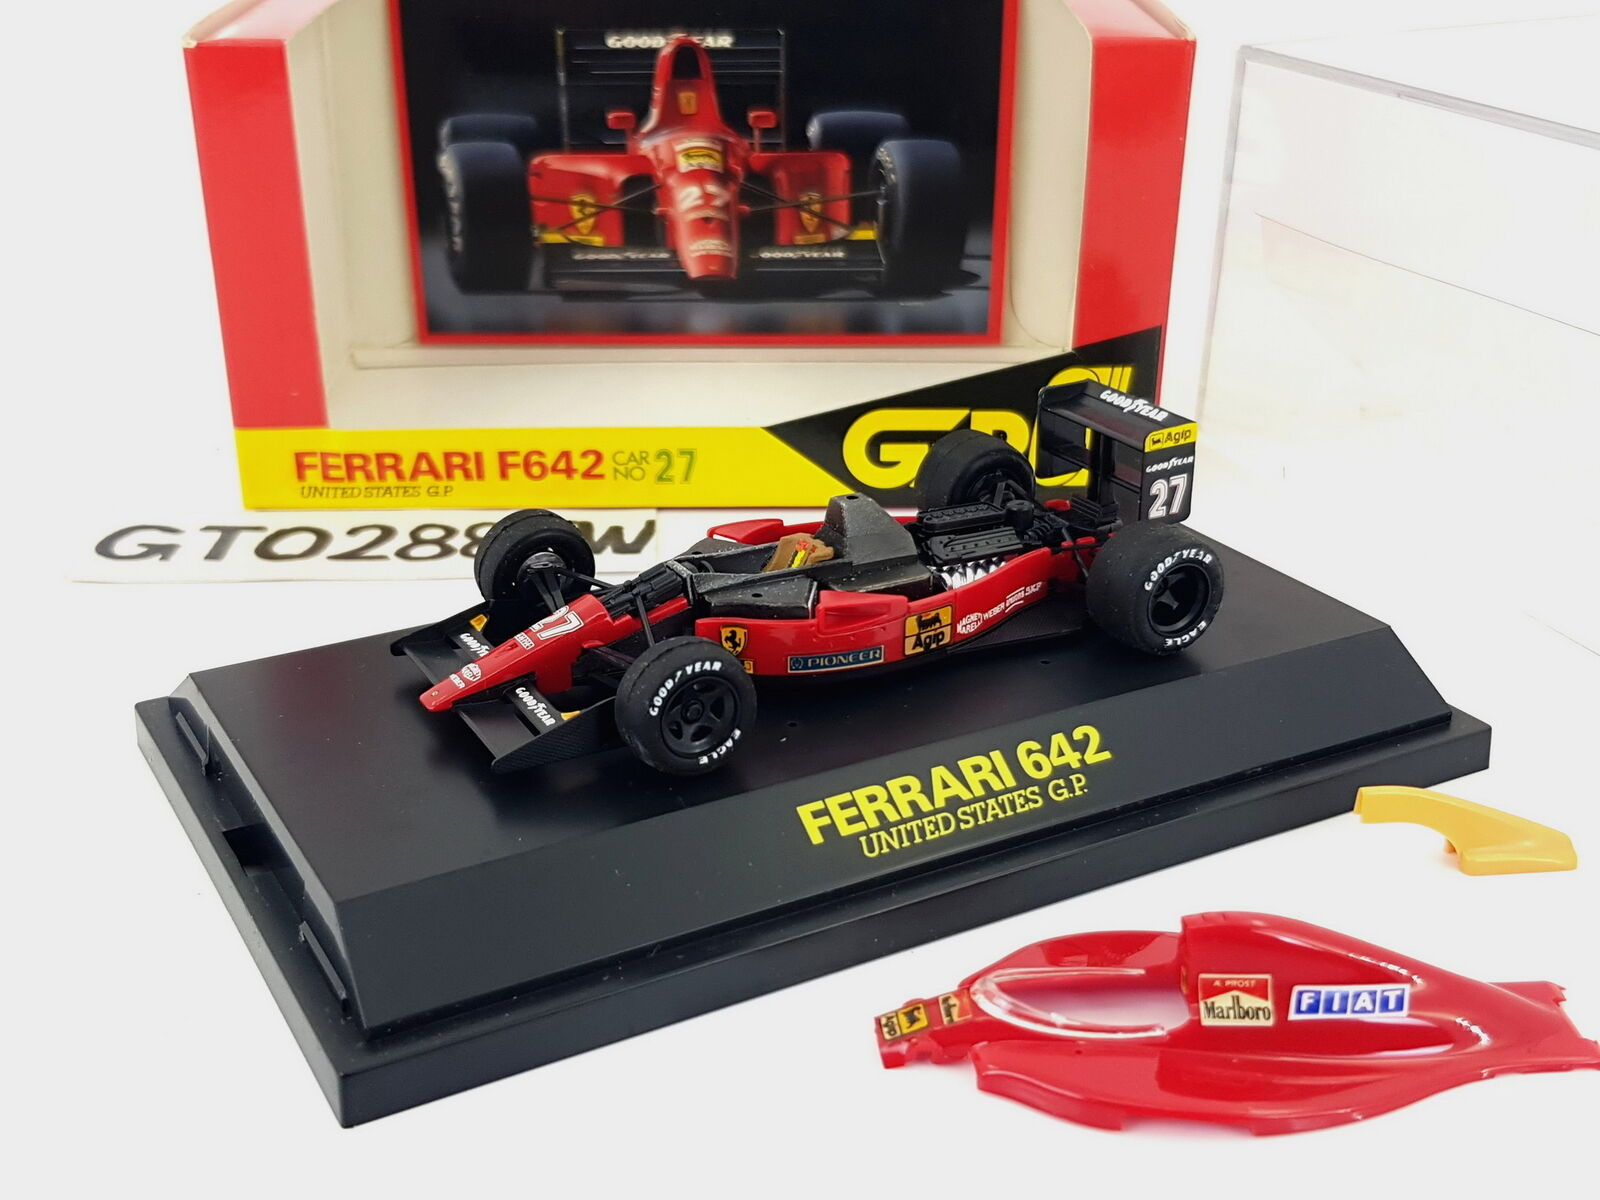 red 1 43 Ferrari 642(F642) 642(F642) 642(F642) F1 U.S GP 1991 Alain Prost(FULL V12 ENGINE Tobacco) ab292d